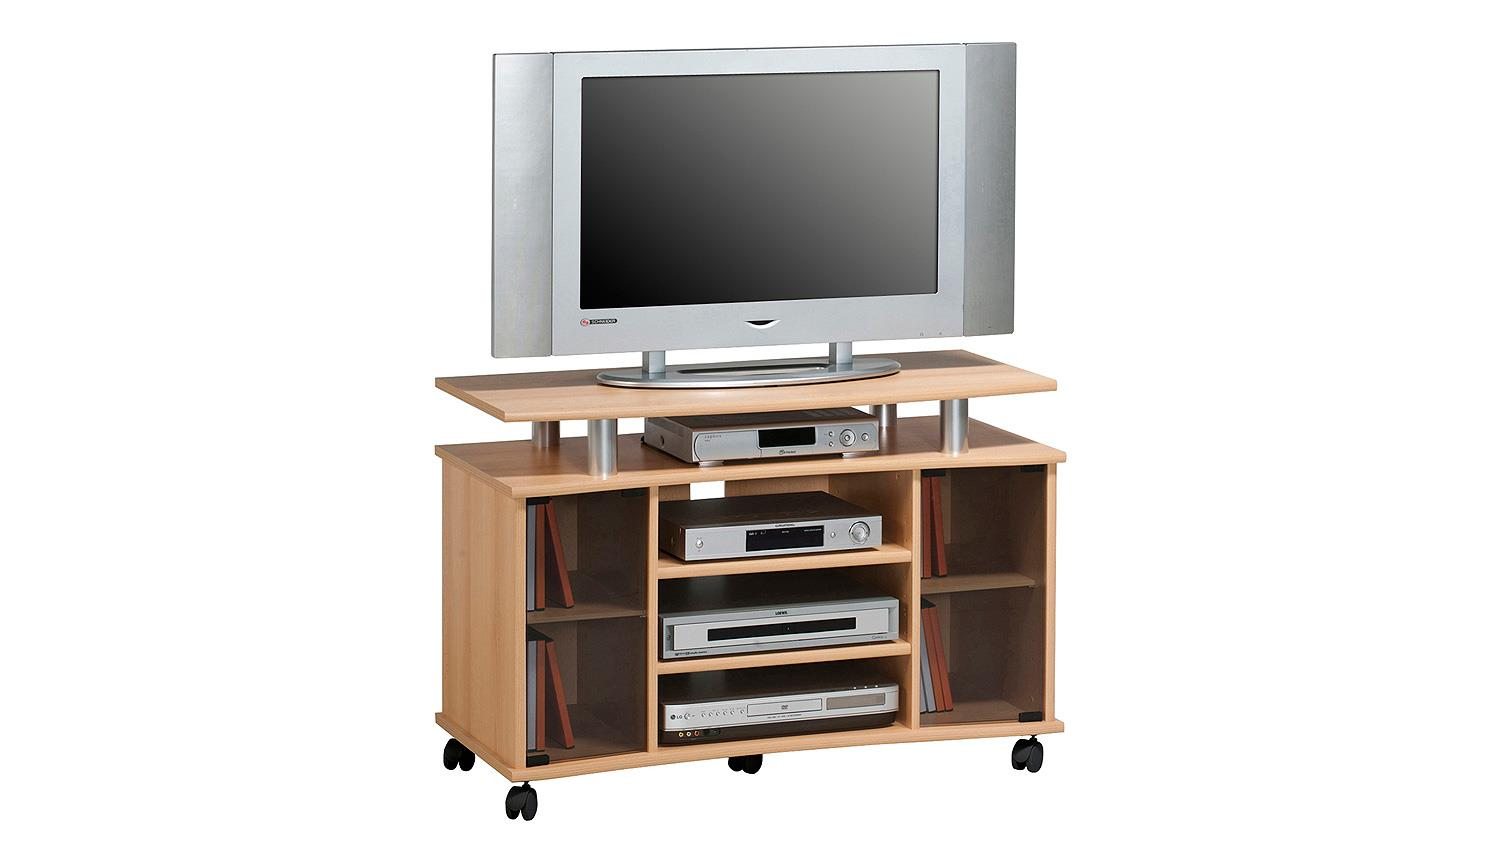 tv rack maja 7362 tv board in buche mit rauchglas. Black Bedroom Furniture Sets. Home Design Ideas